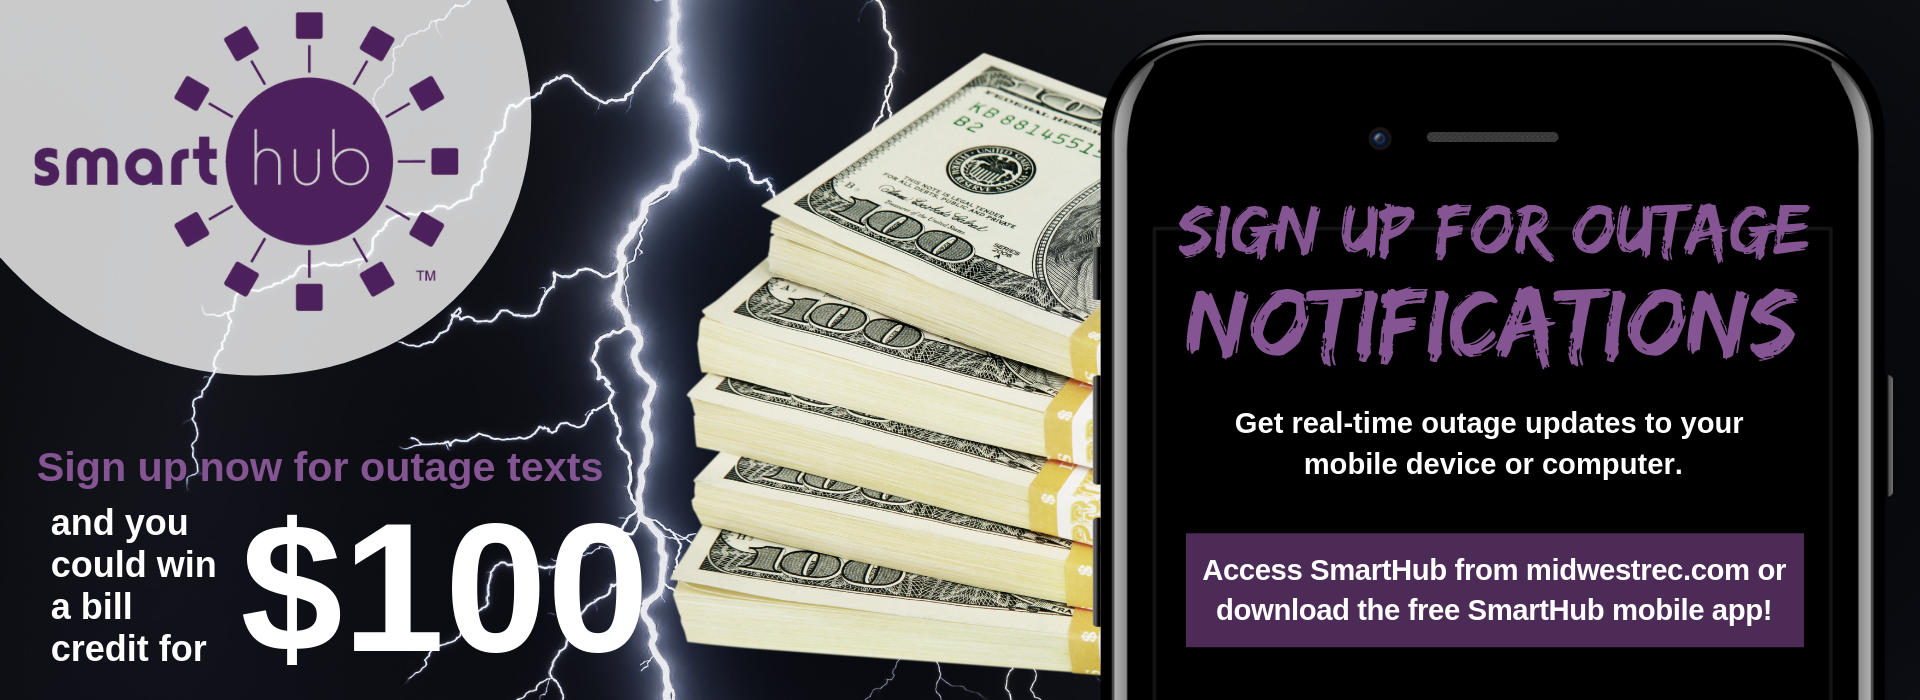 Sign up for outage texting through SmartHub and win $100